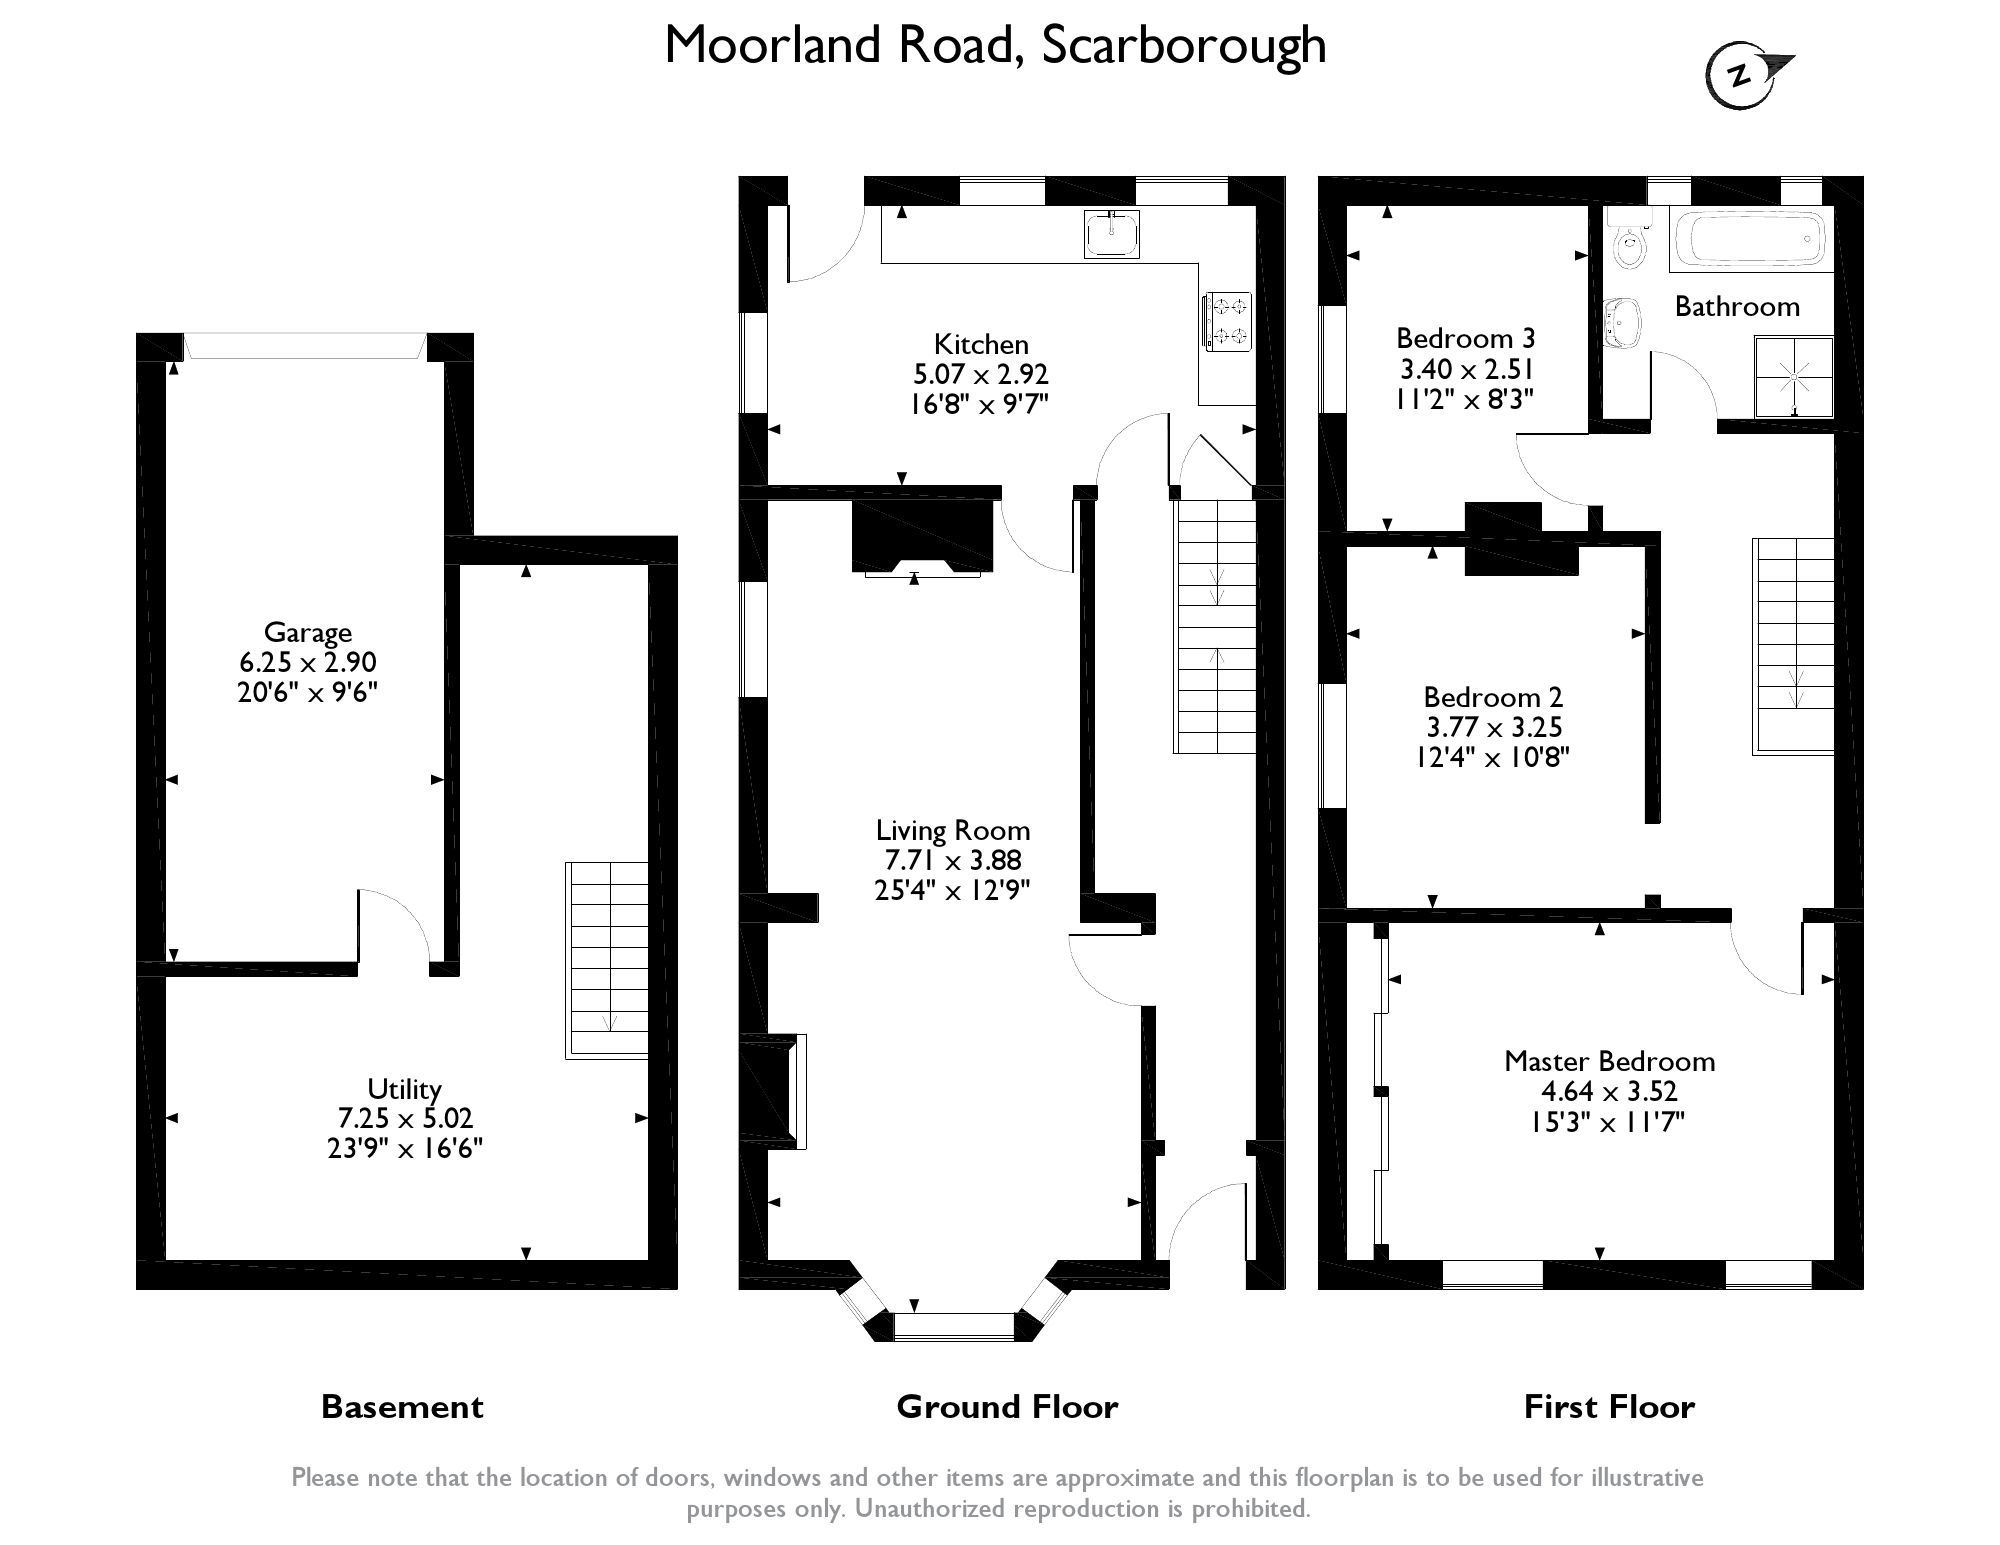 Moorland Road, Scarborough, YO12